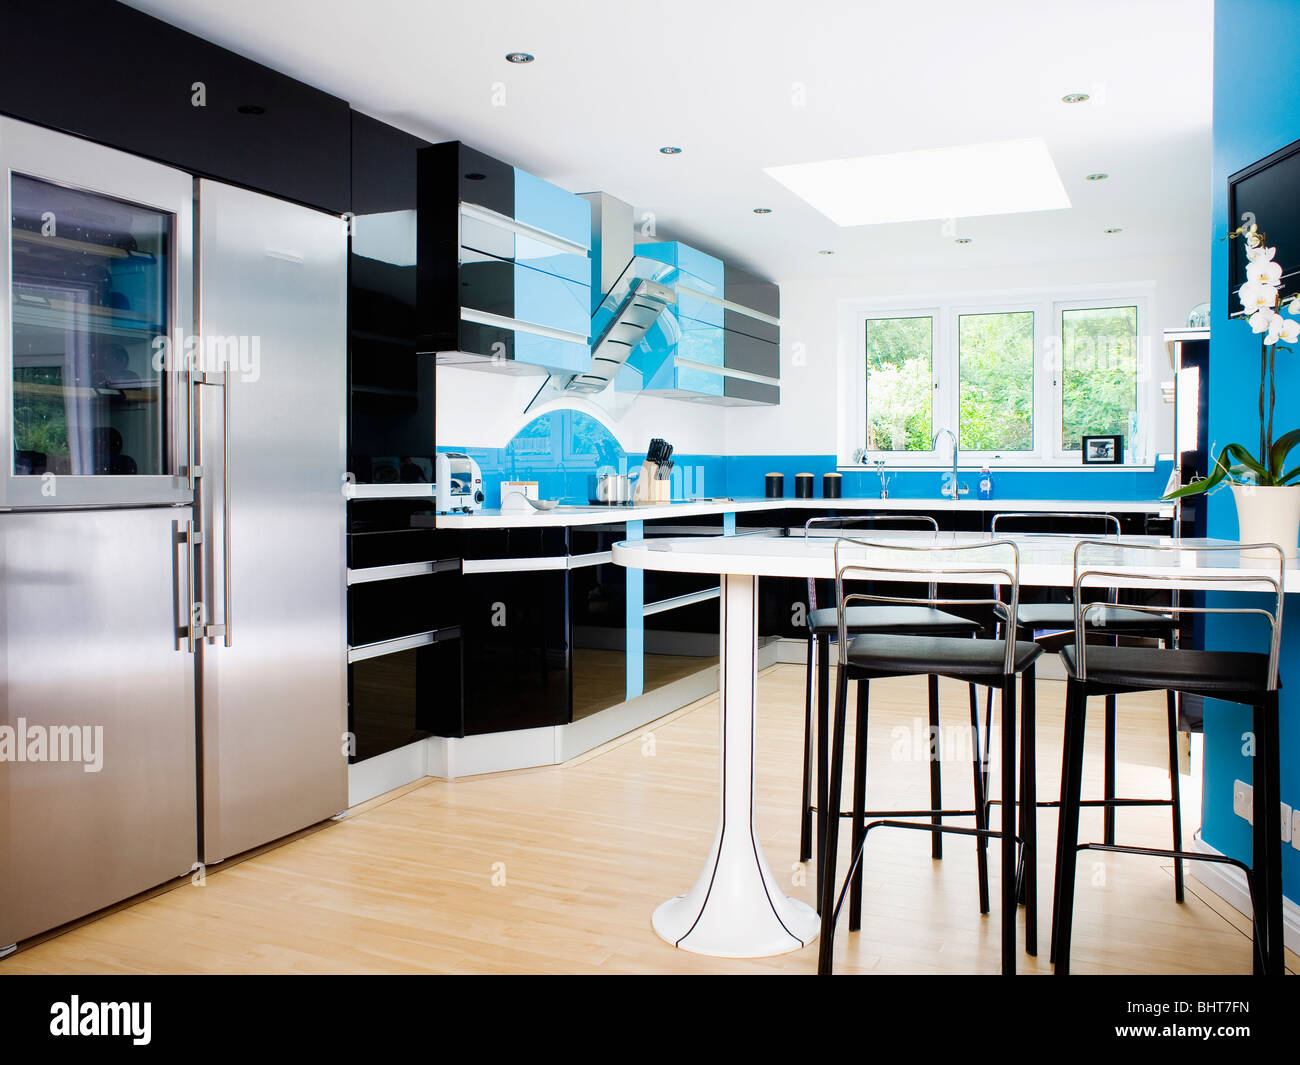 Black Stools At Fitted White Table In Blue And Black Modern Kitchen With  Large Stainless Steel American Style Fridge Freezer